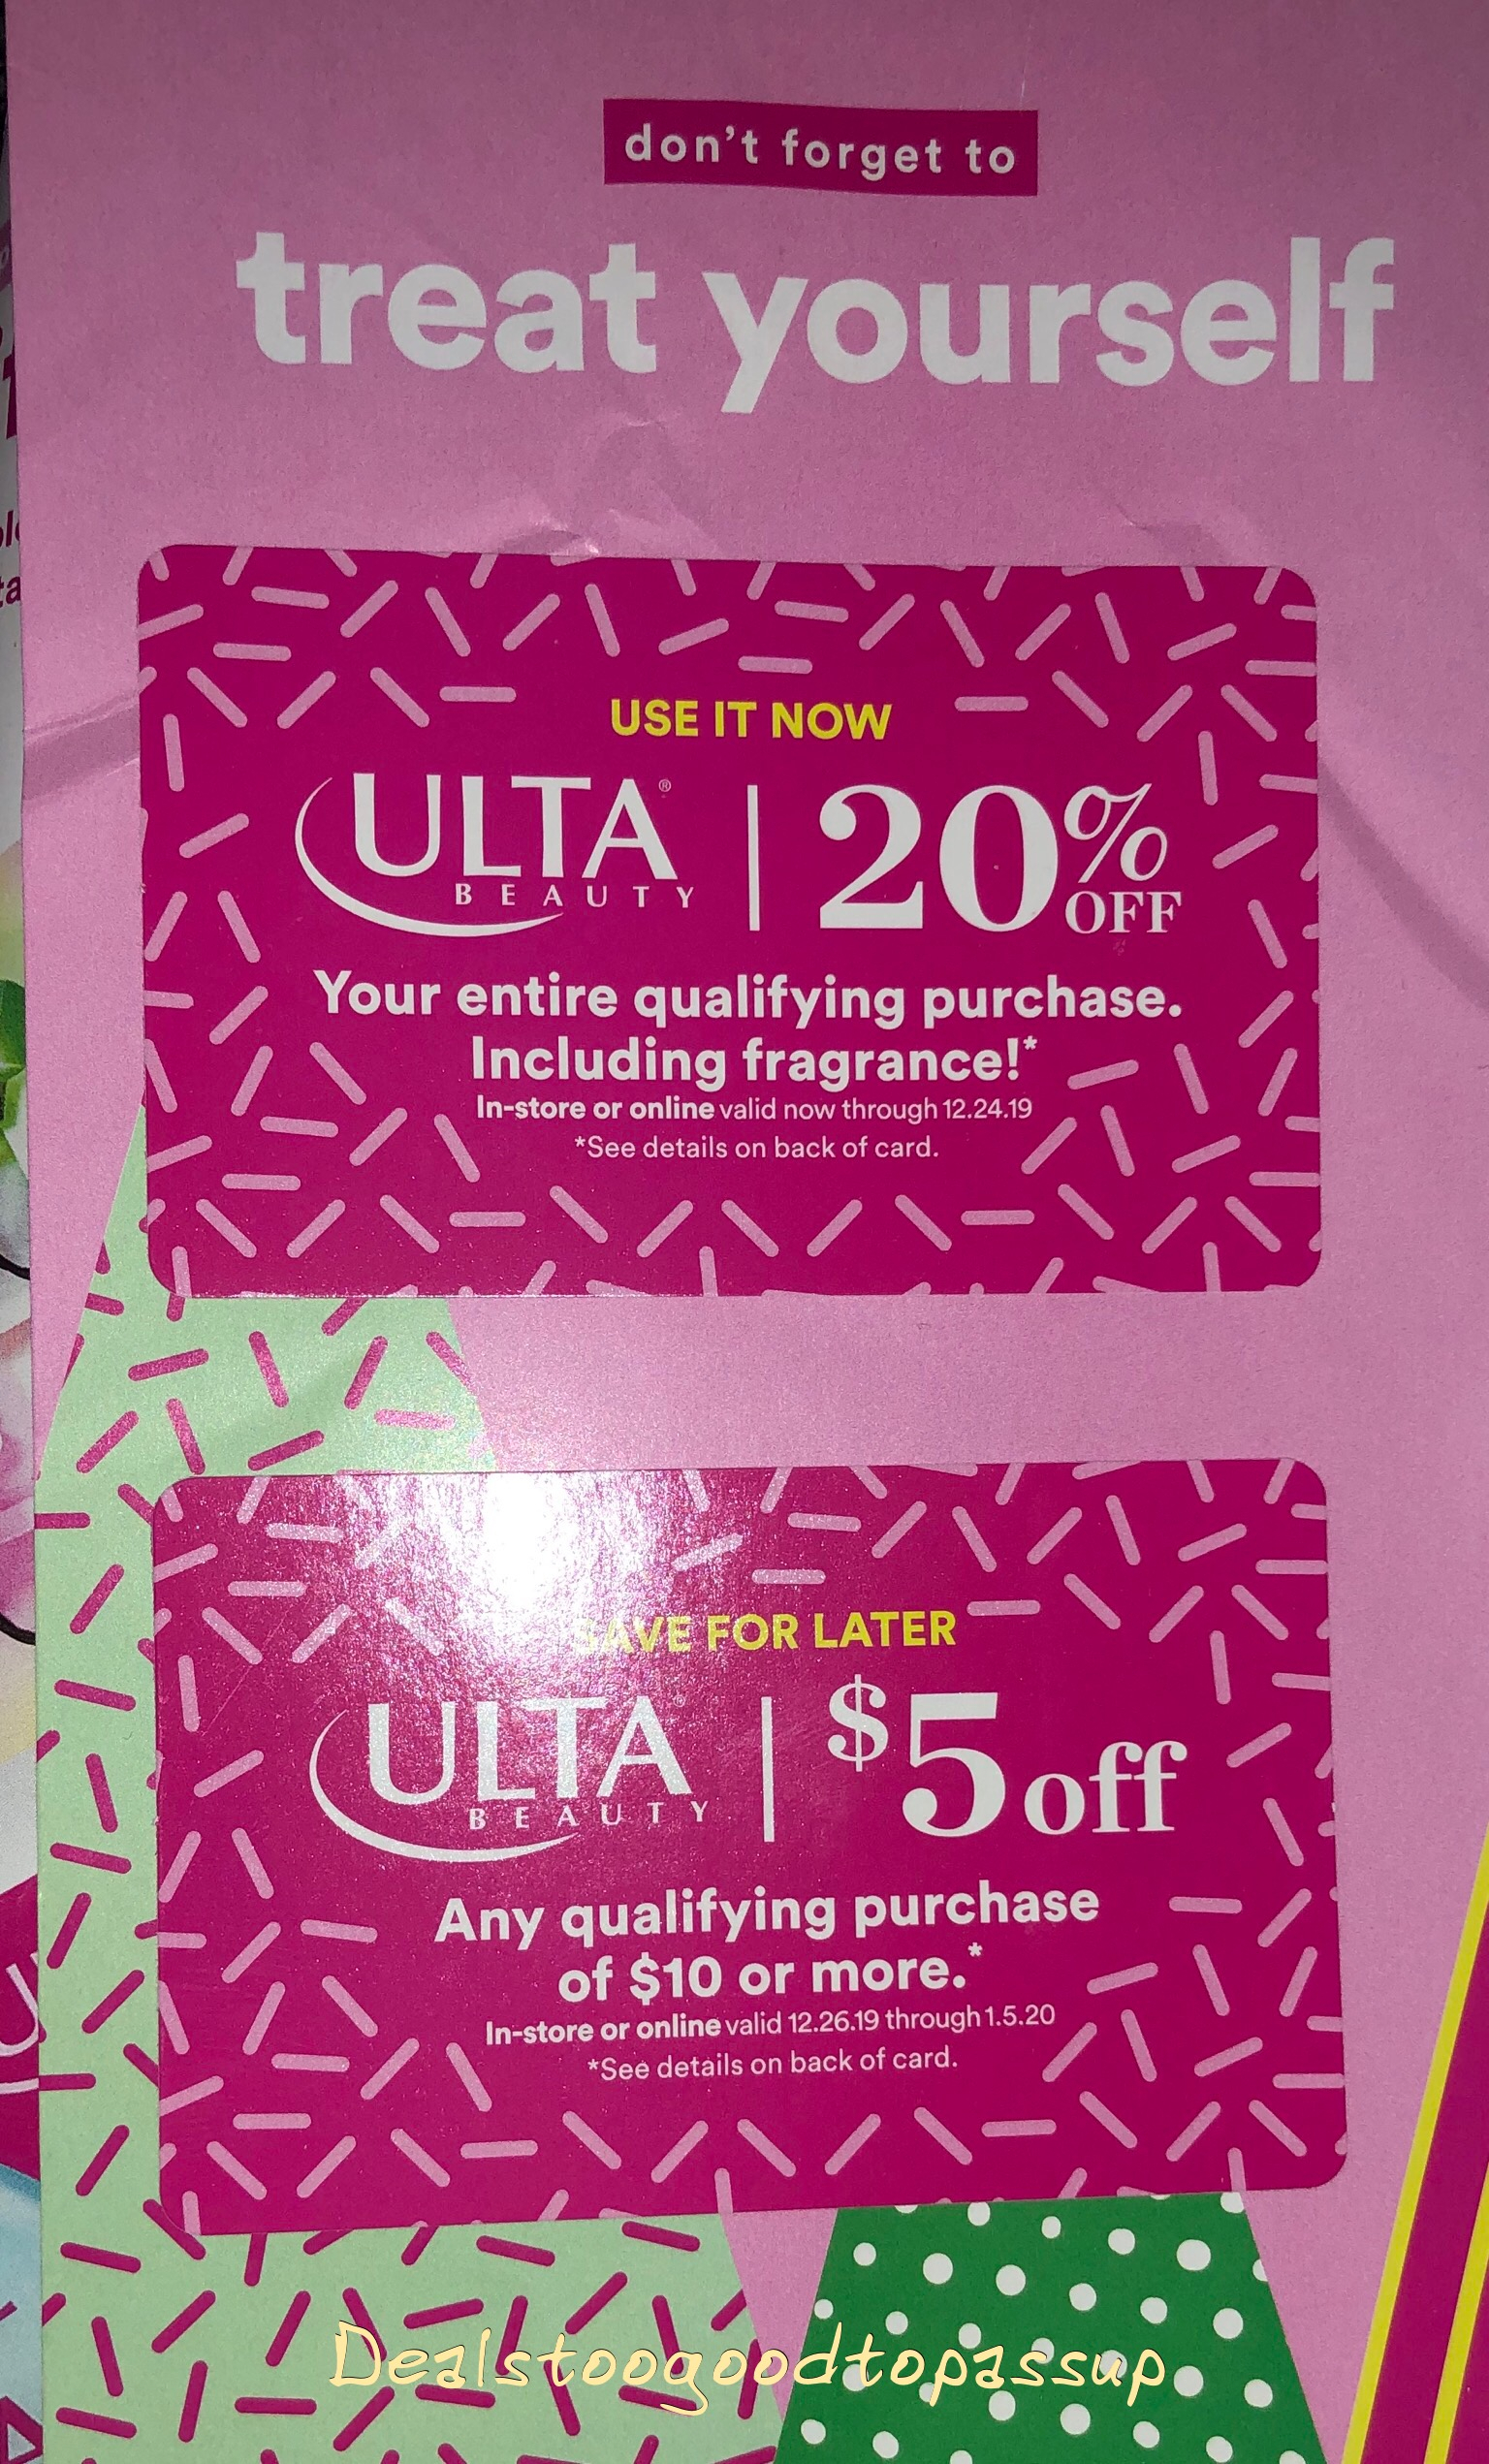 Ulta Sales Calendar 2020 With Promotions, Gwp, Deals for Emoji Blitz Calendar 2020